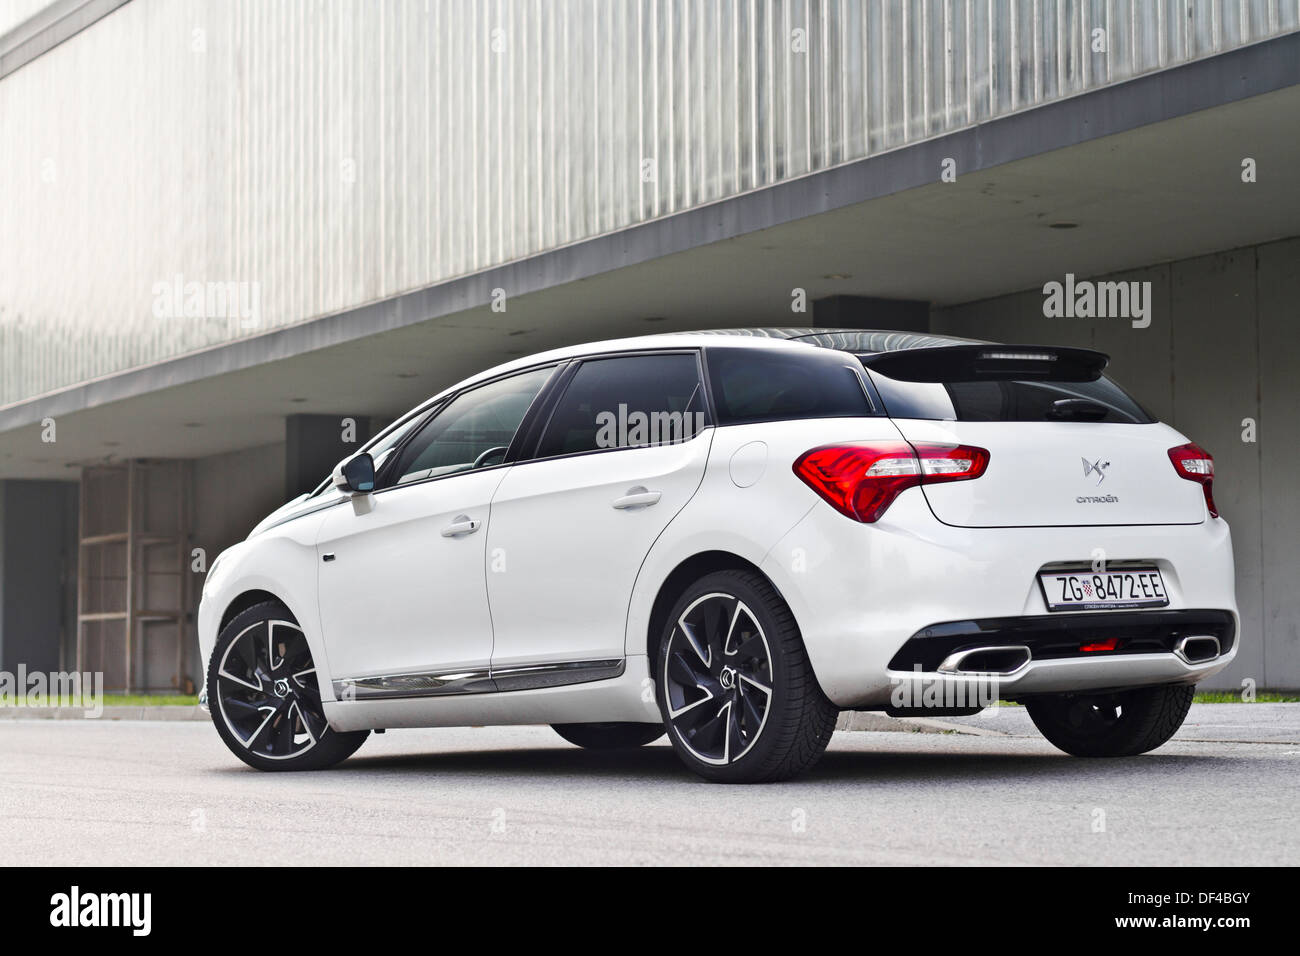 citroen ds5 sport chic hybrid4 airdream stock photo. Black Bedroom Furniture Sets. Home Design Ideas